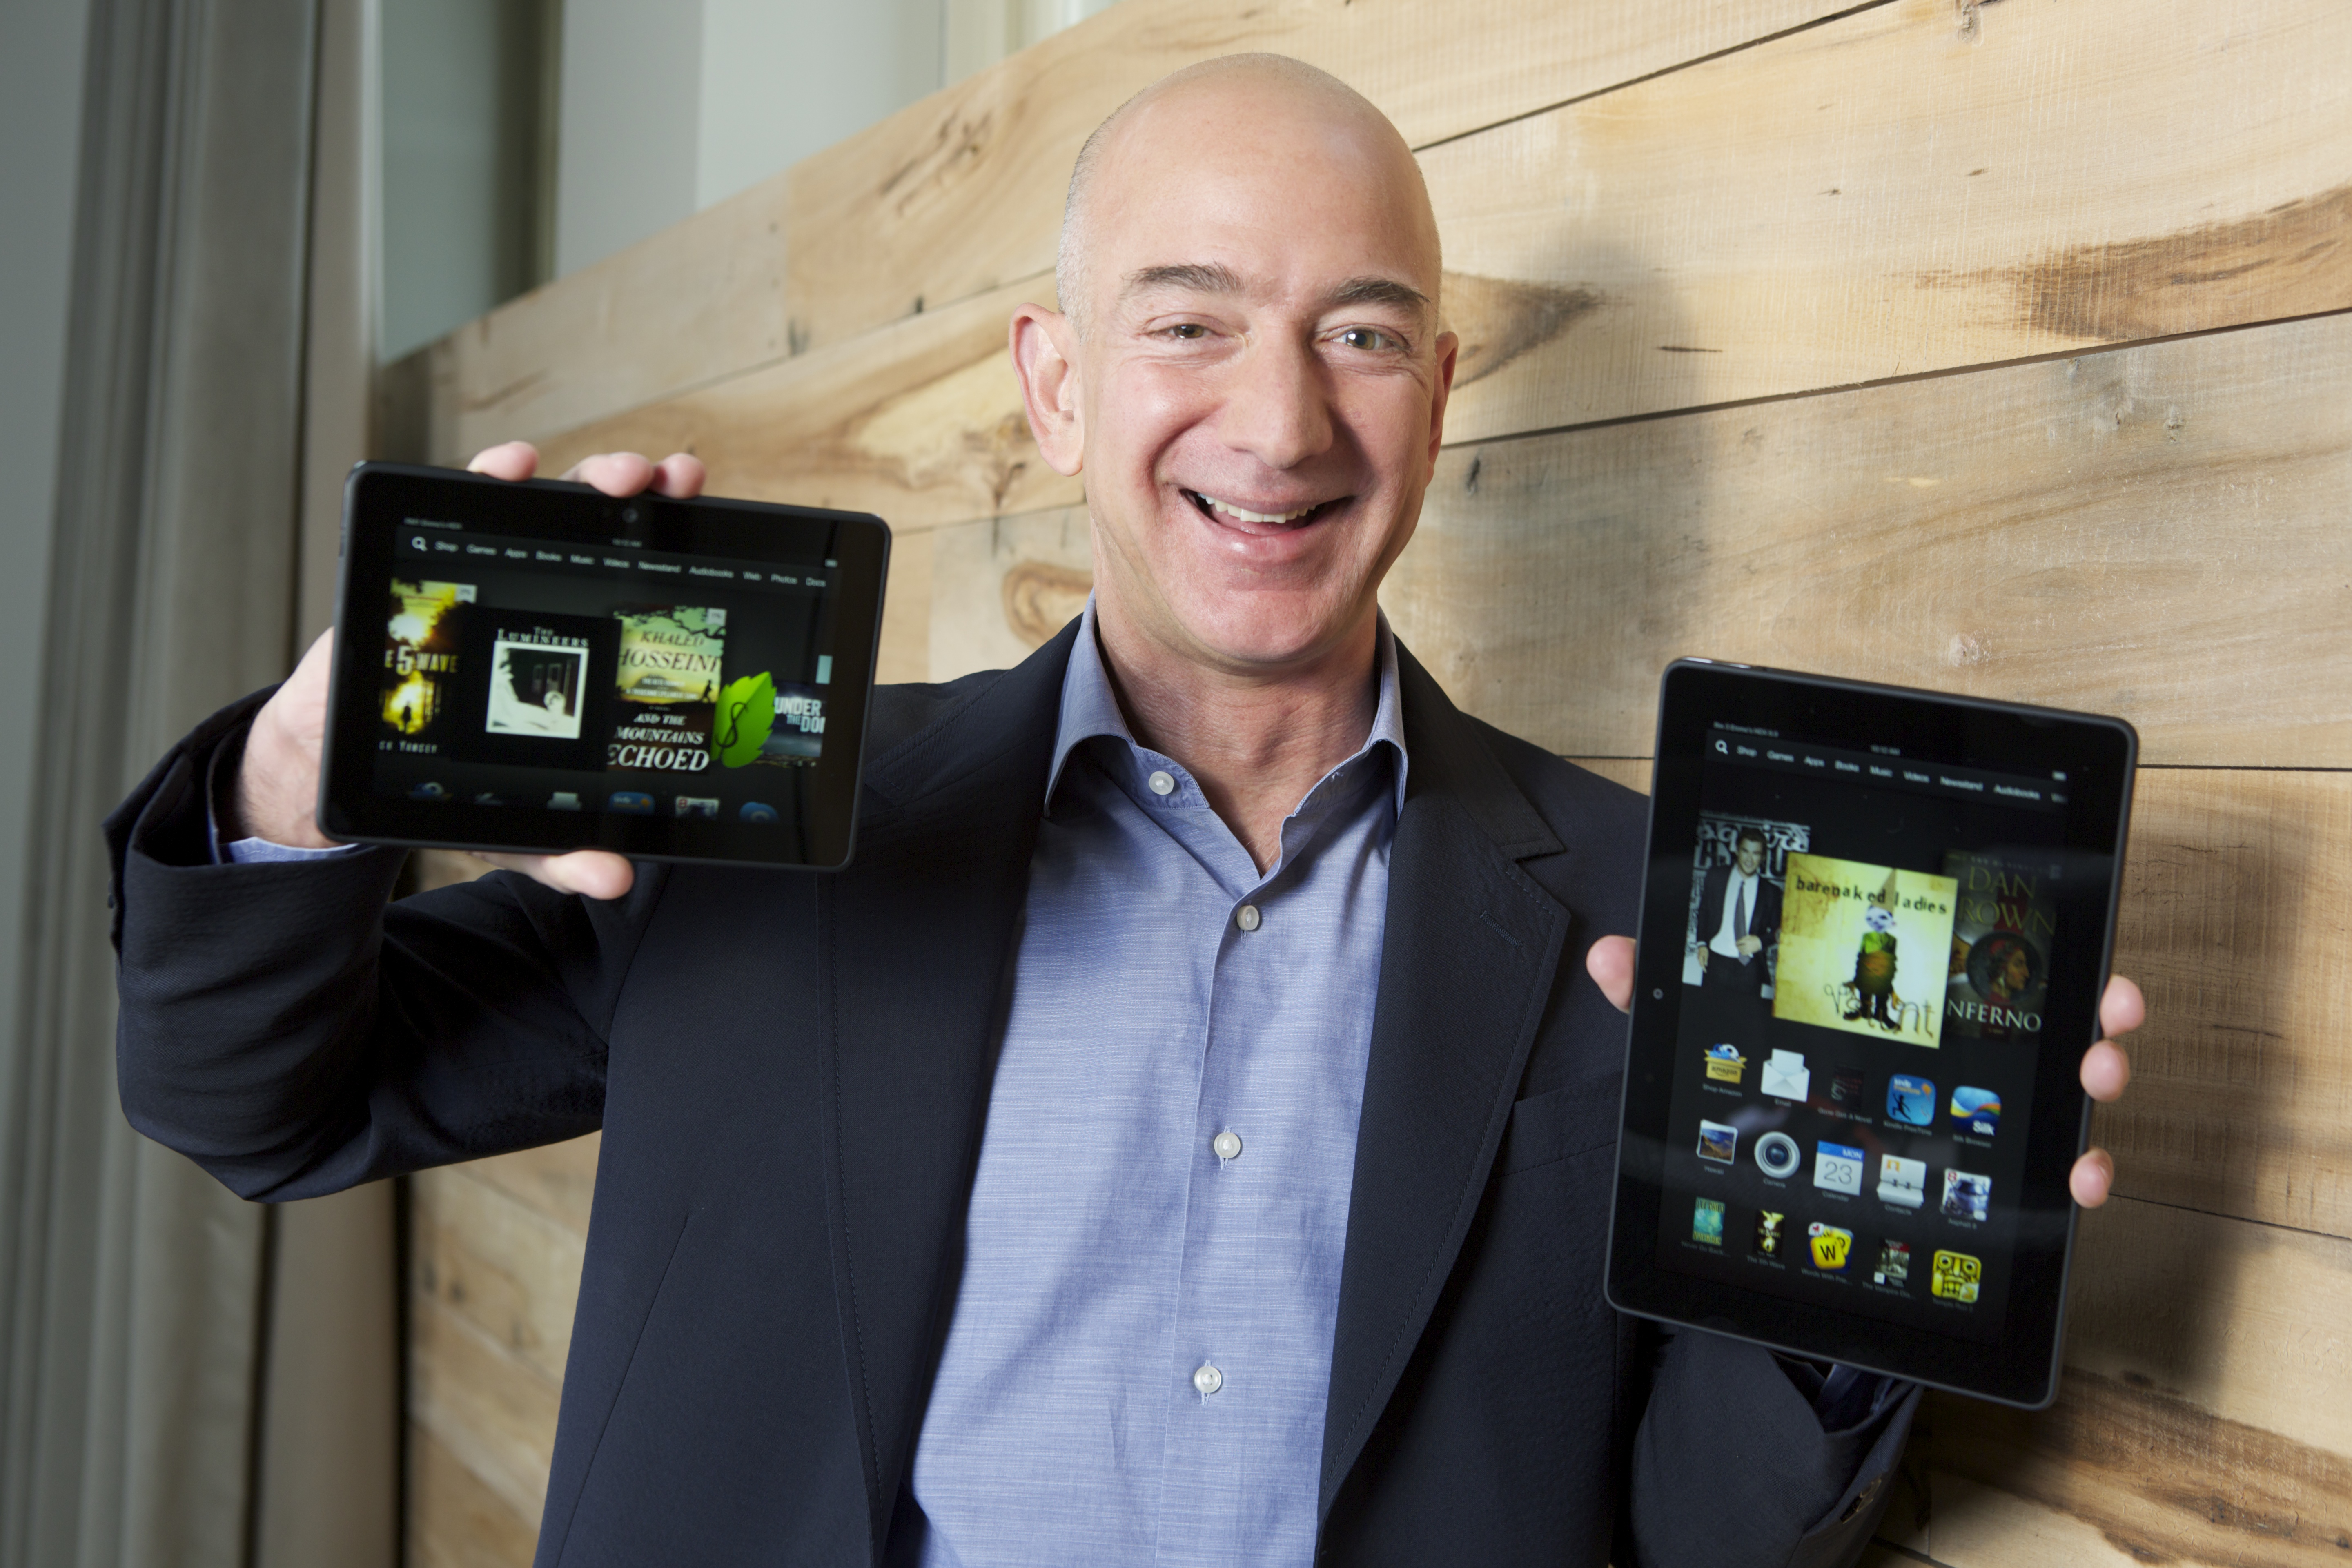 Amazon Ceo Tells Small Book Shops Complaining Is Not A Strategy